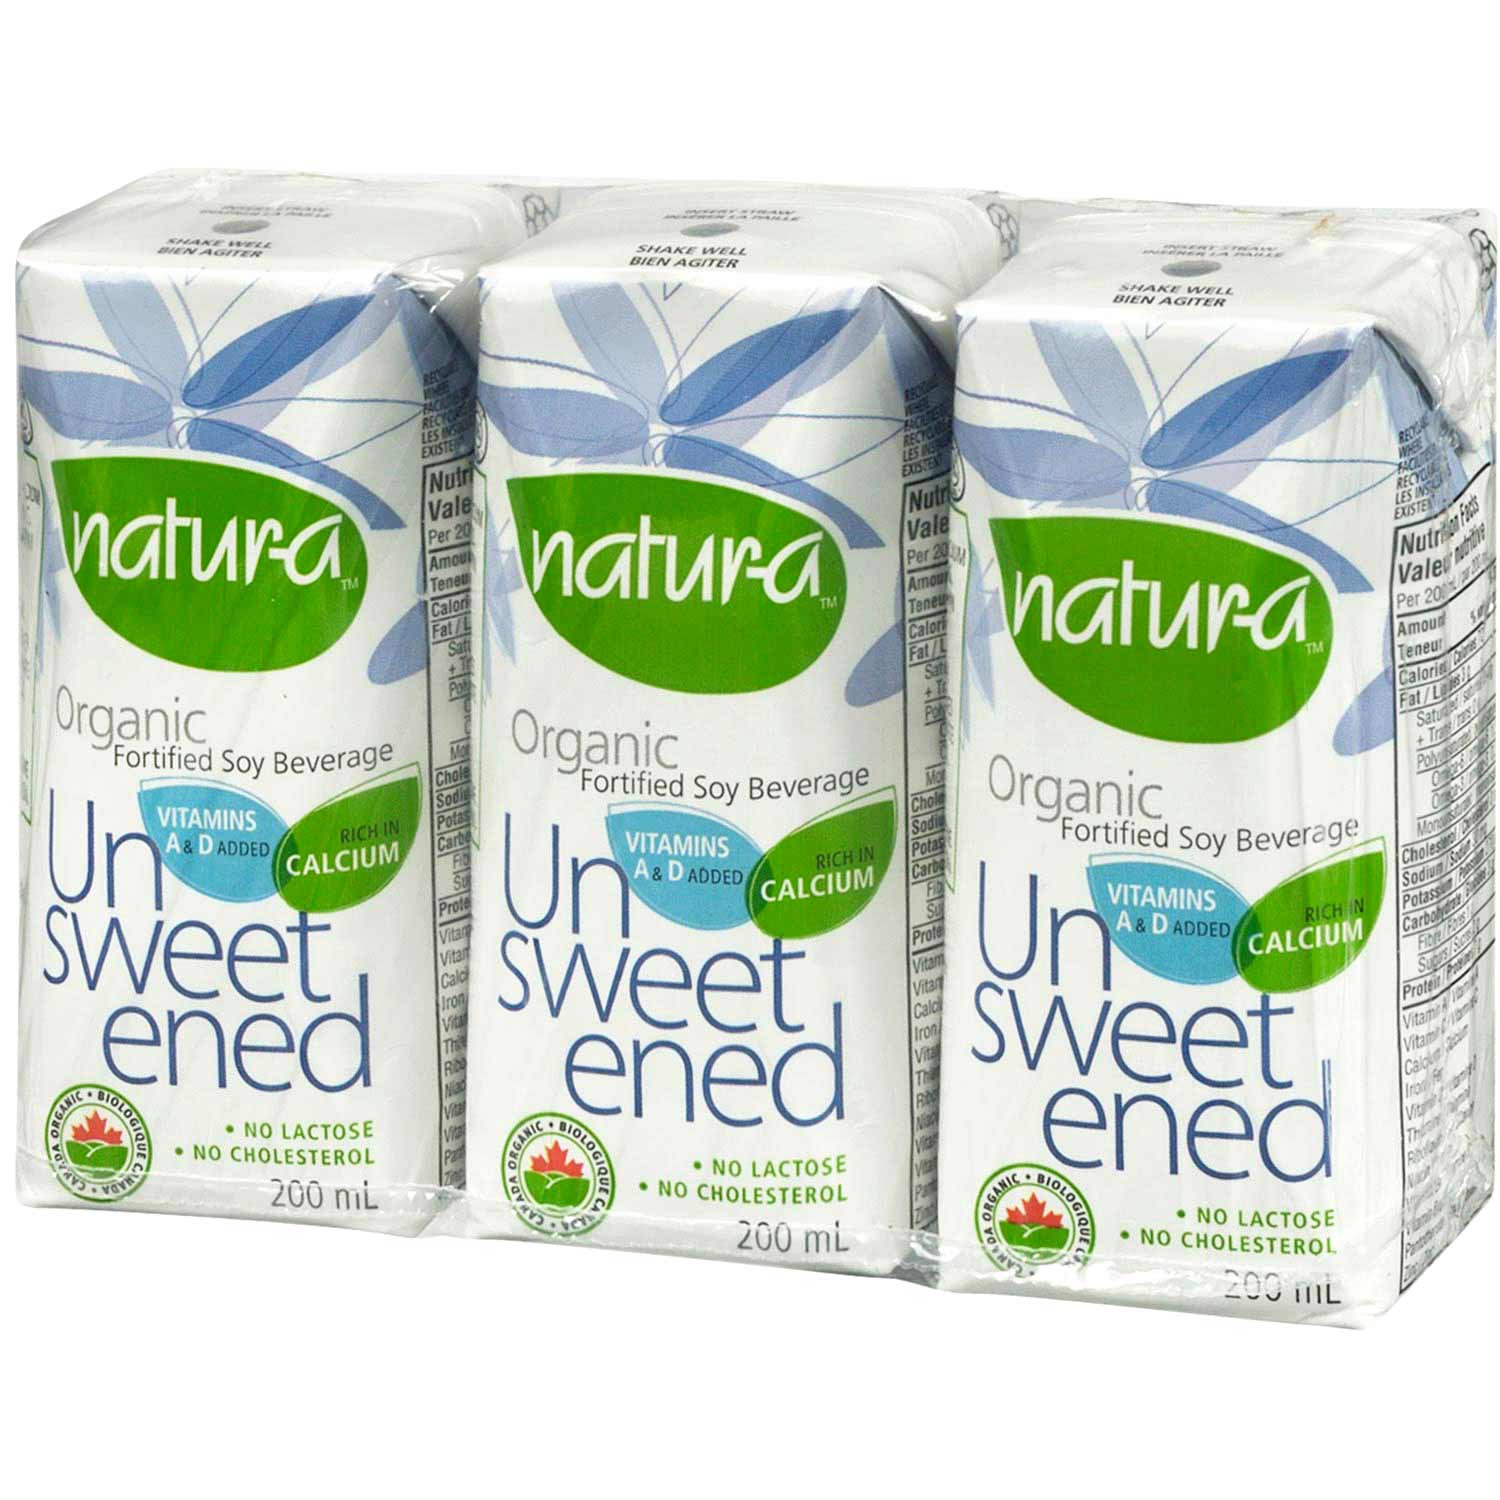 Natur-a Enriched Soy Beverage - Unsweetened (Organic), 200 ml